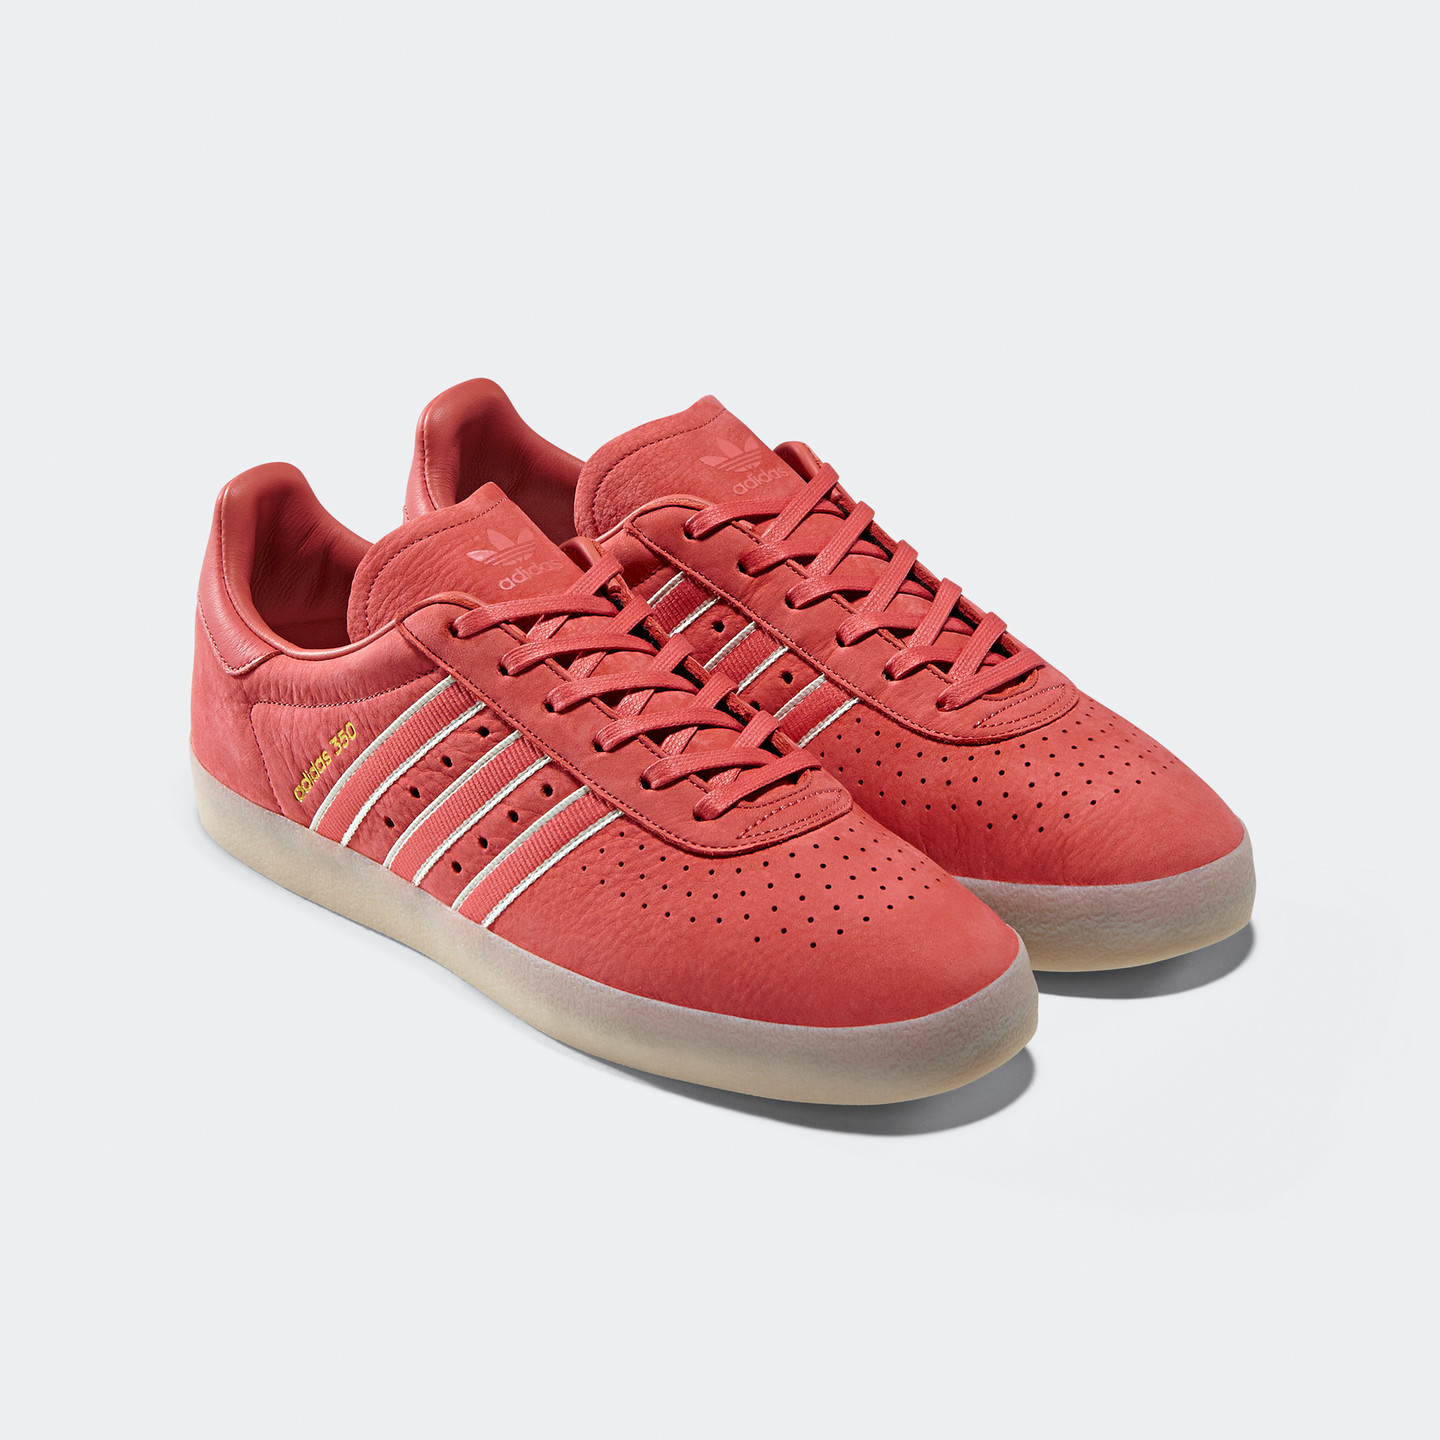 Adidas 350 x Oyster Holdings Trace Scarlet / Chalk White / Gold Metallic DB1975